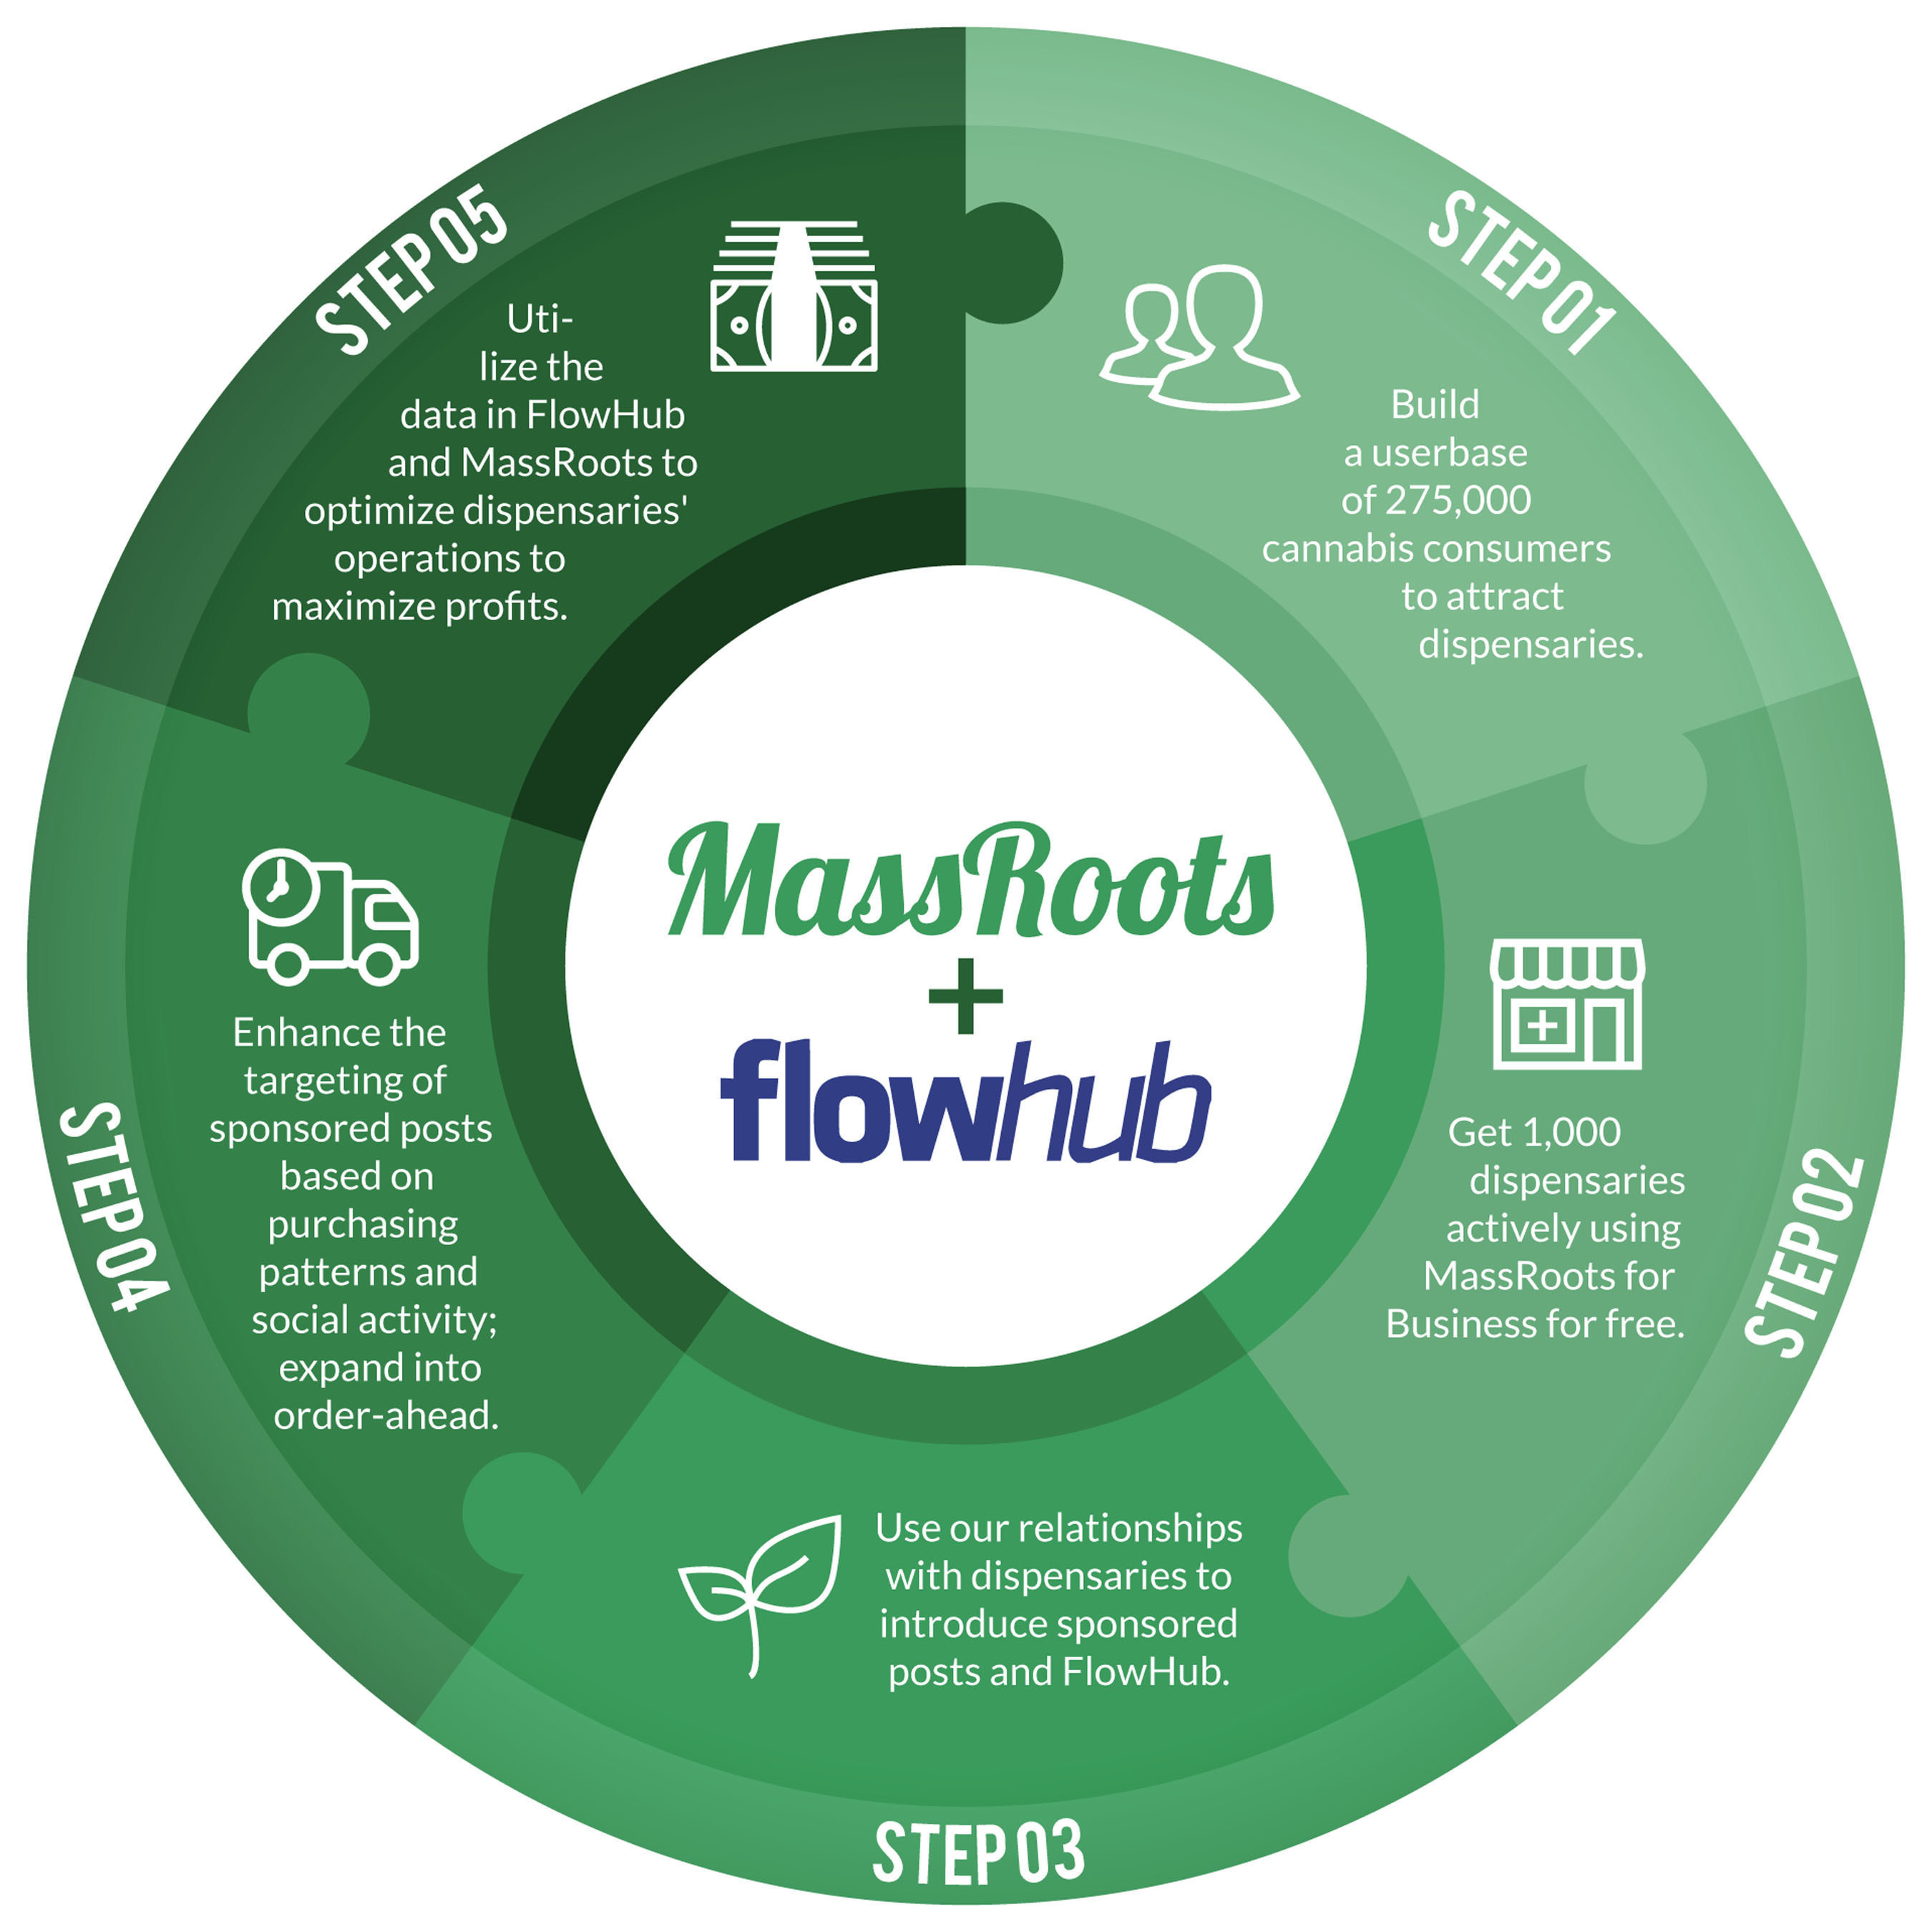 MassRoots' partnership with Flowhub consolidates some of the most important data in the cannabis industry into one platform.